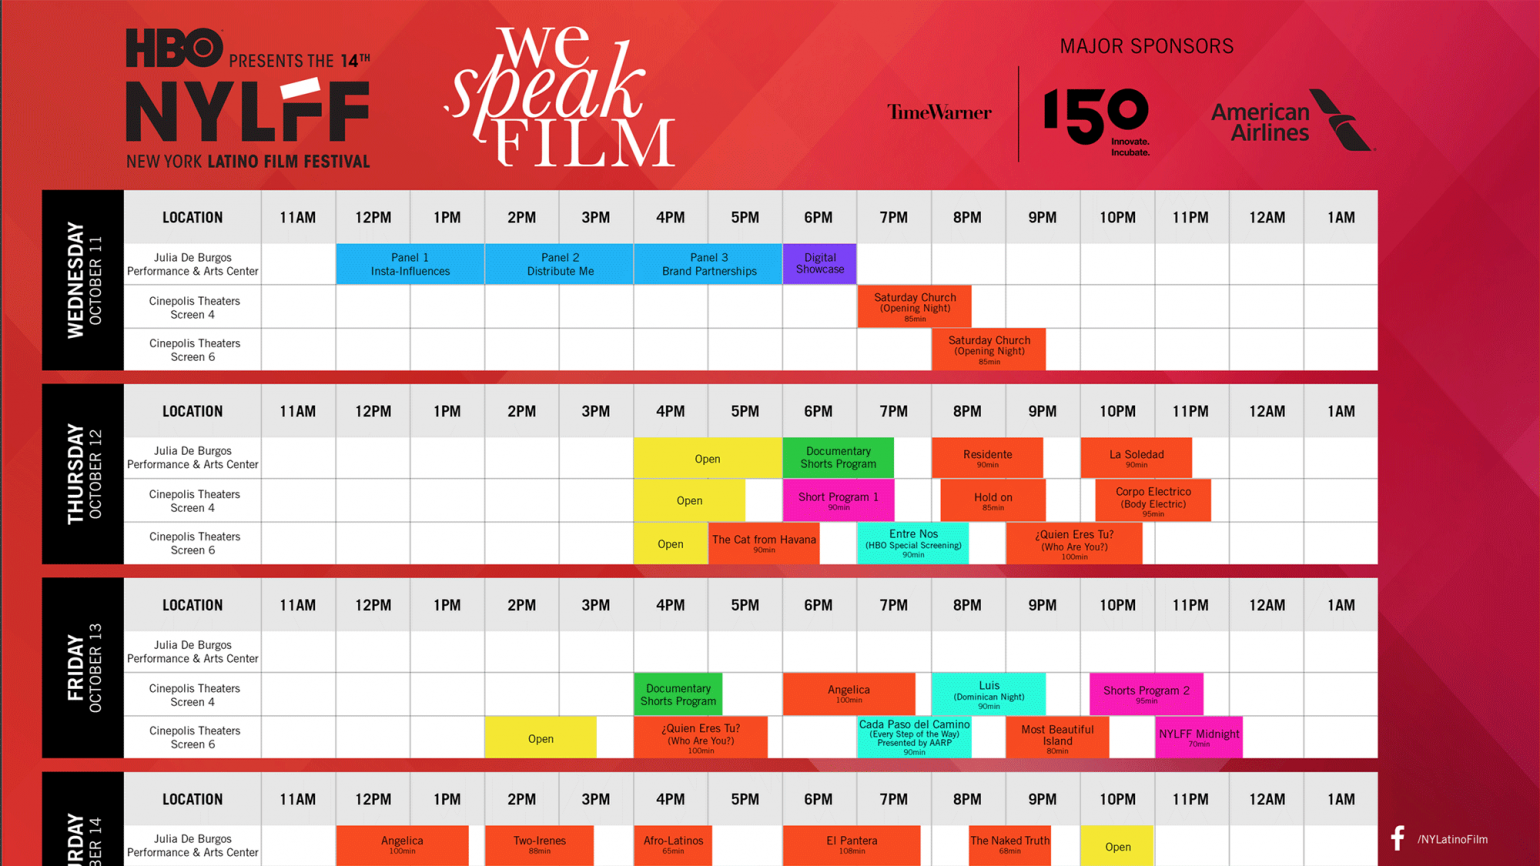 NYLFF - Downloadable schedule